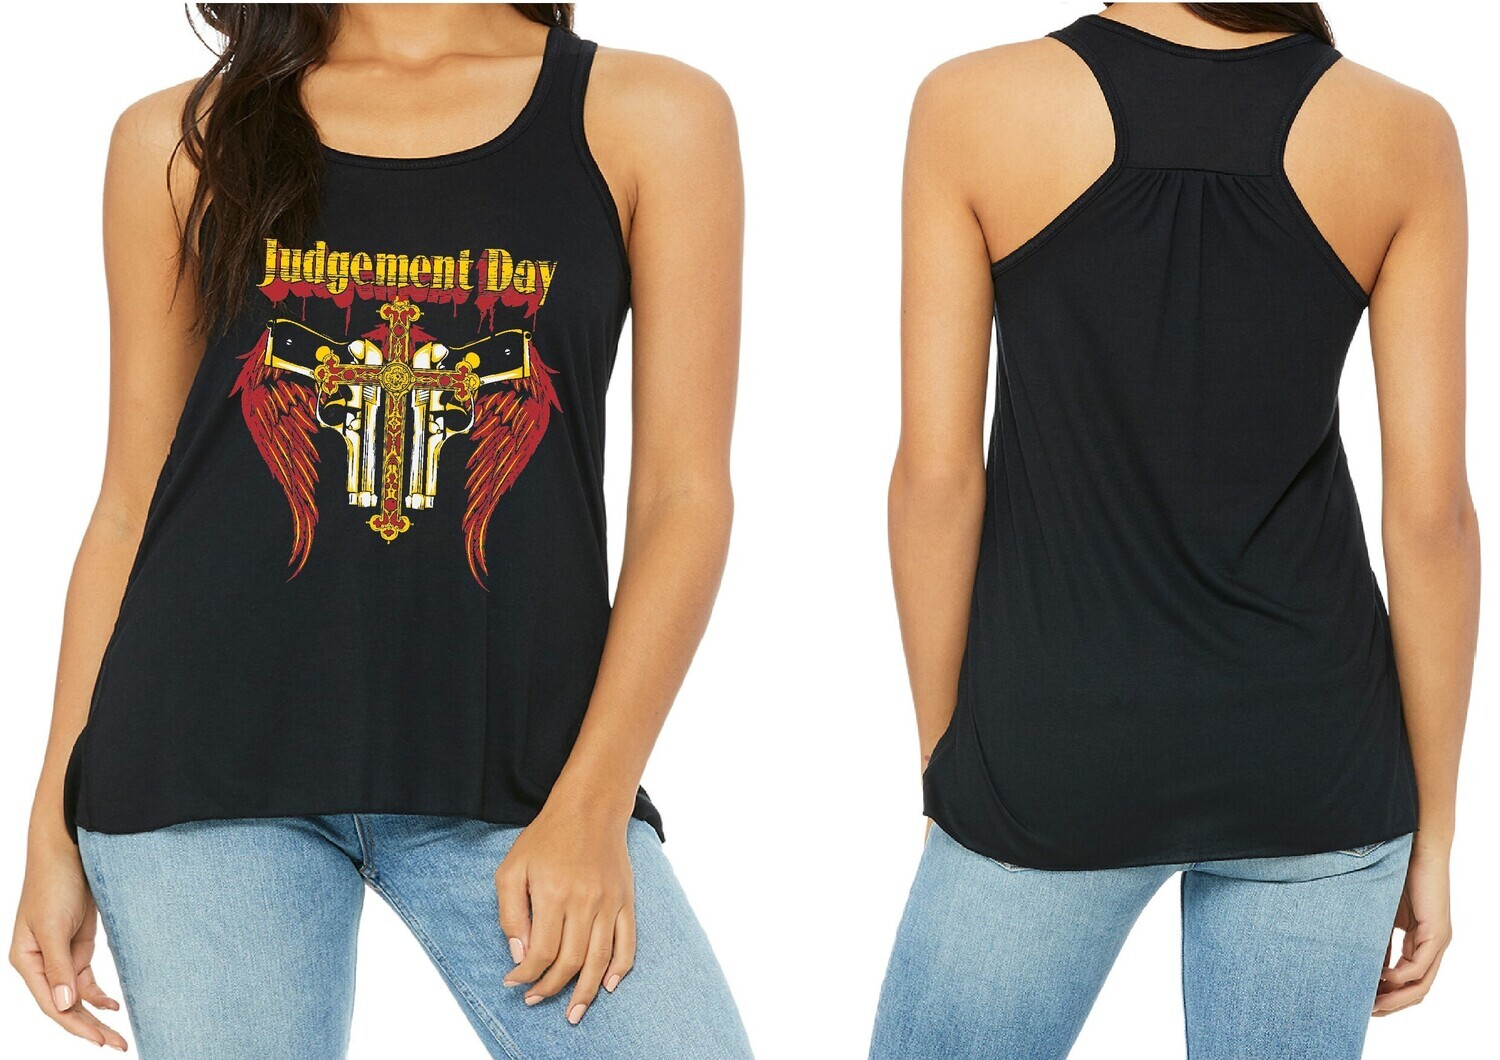 JUDGEMENT DAY LADIES RACER BACK FREE SHIPPING